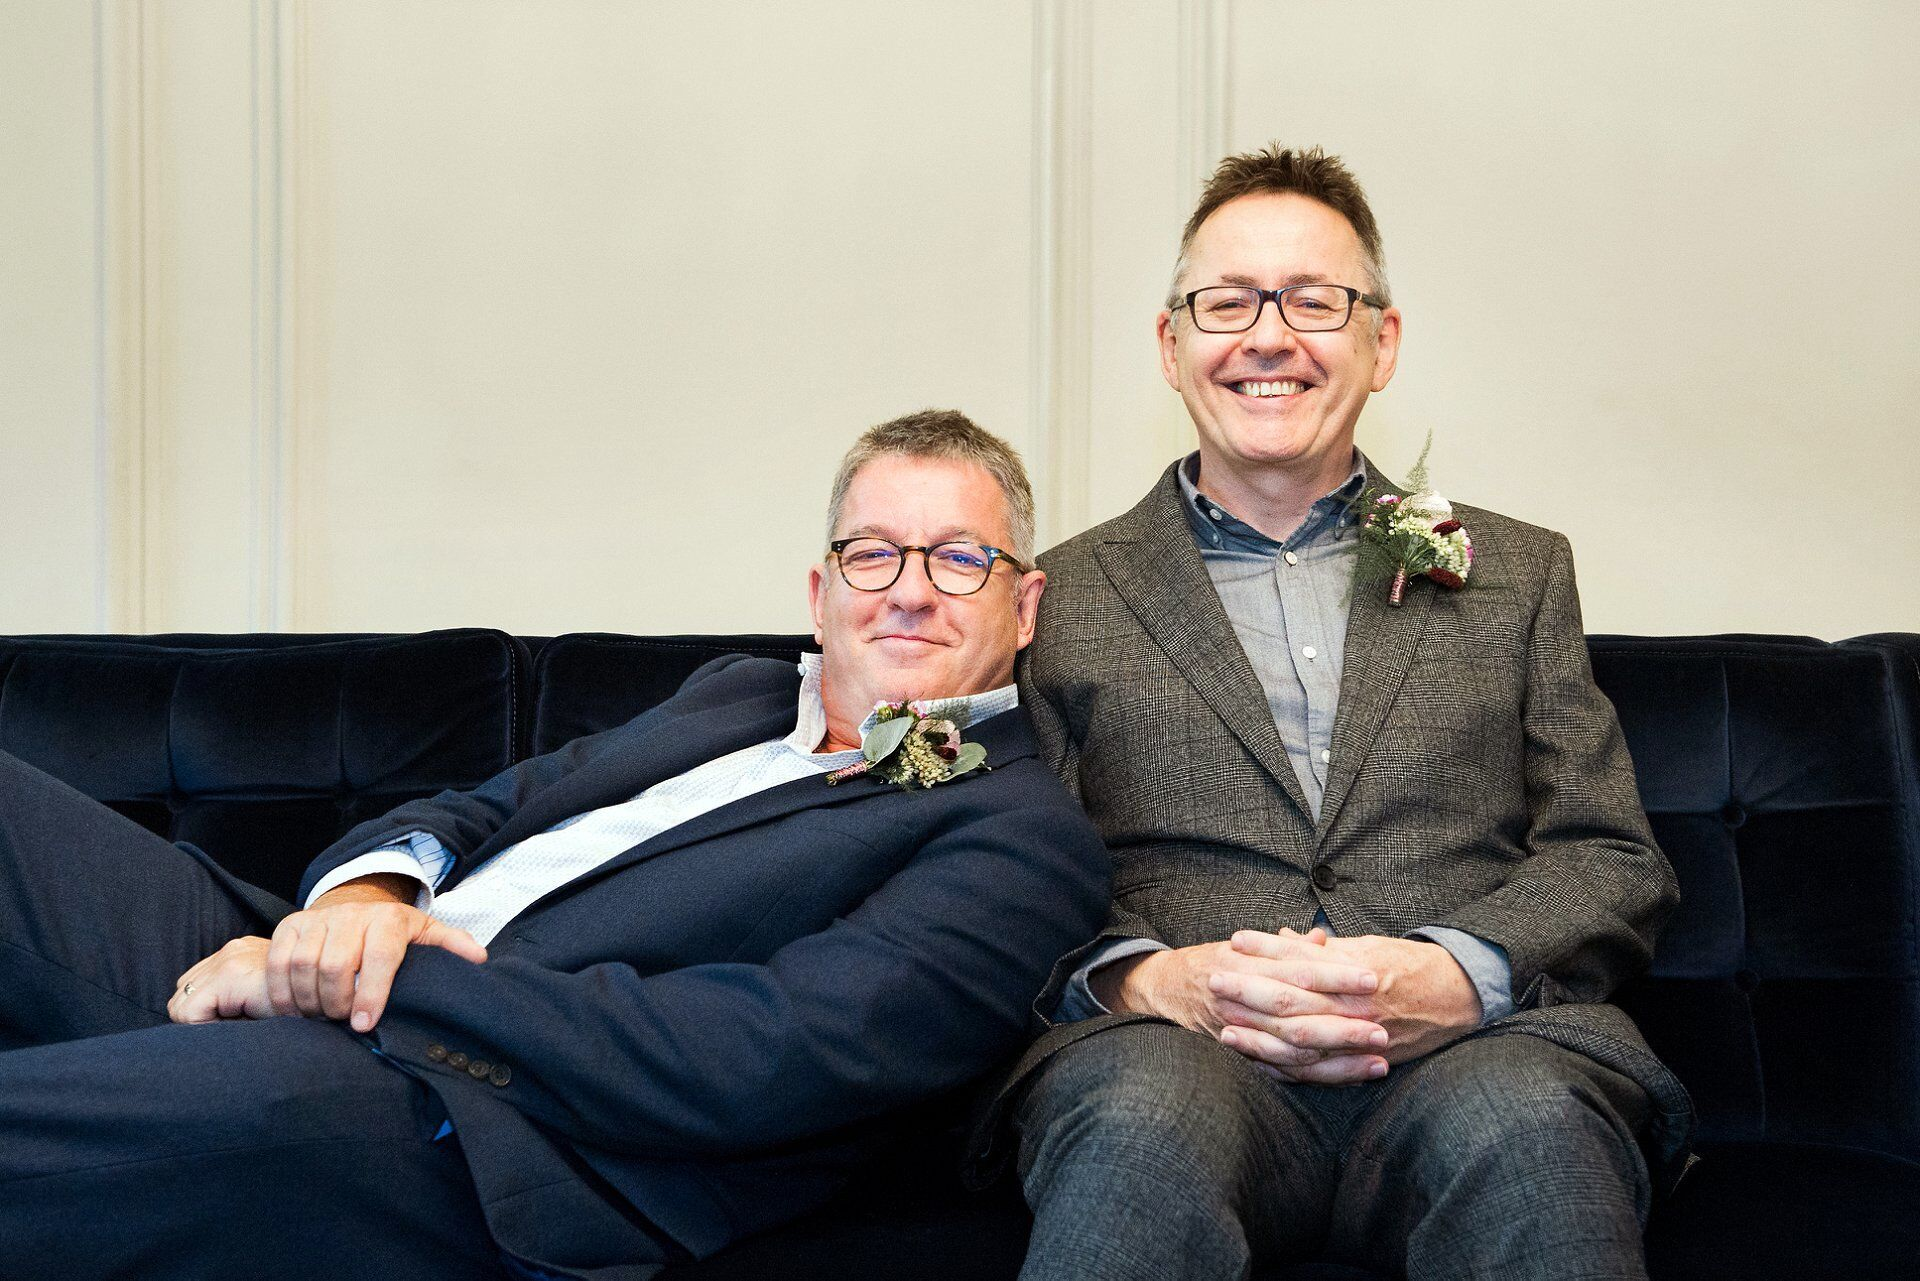 two guests in the soho room at old marylebone town hall on the wonderful navy velvet sofa